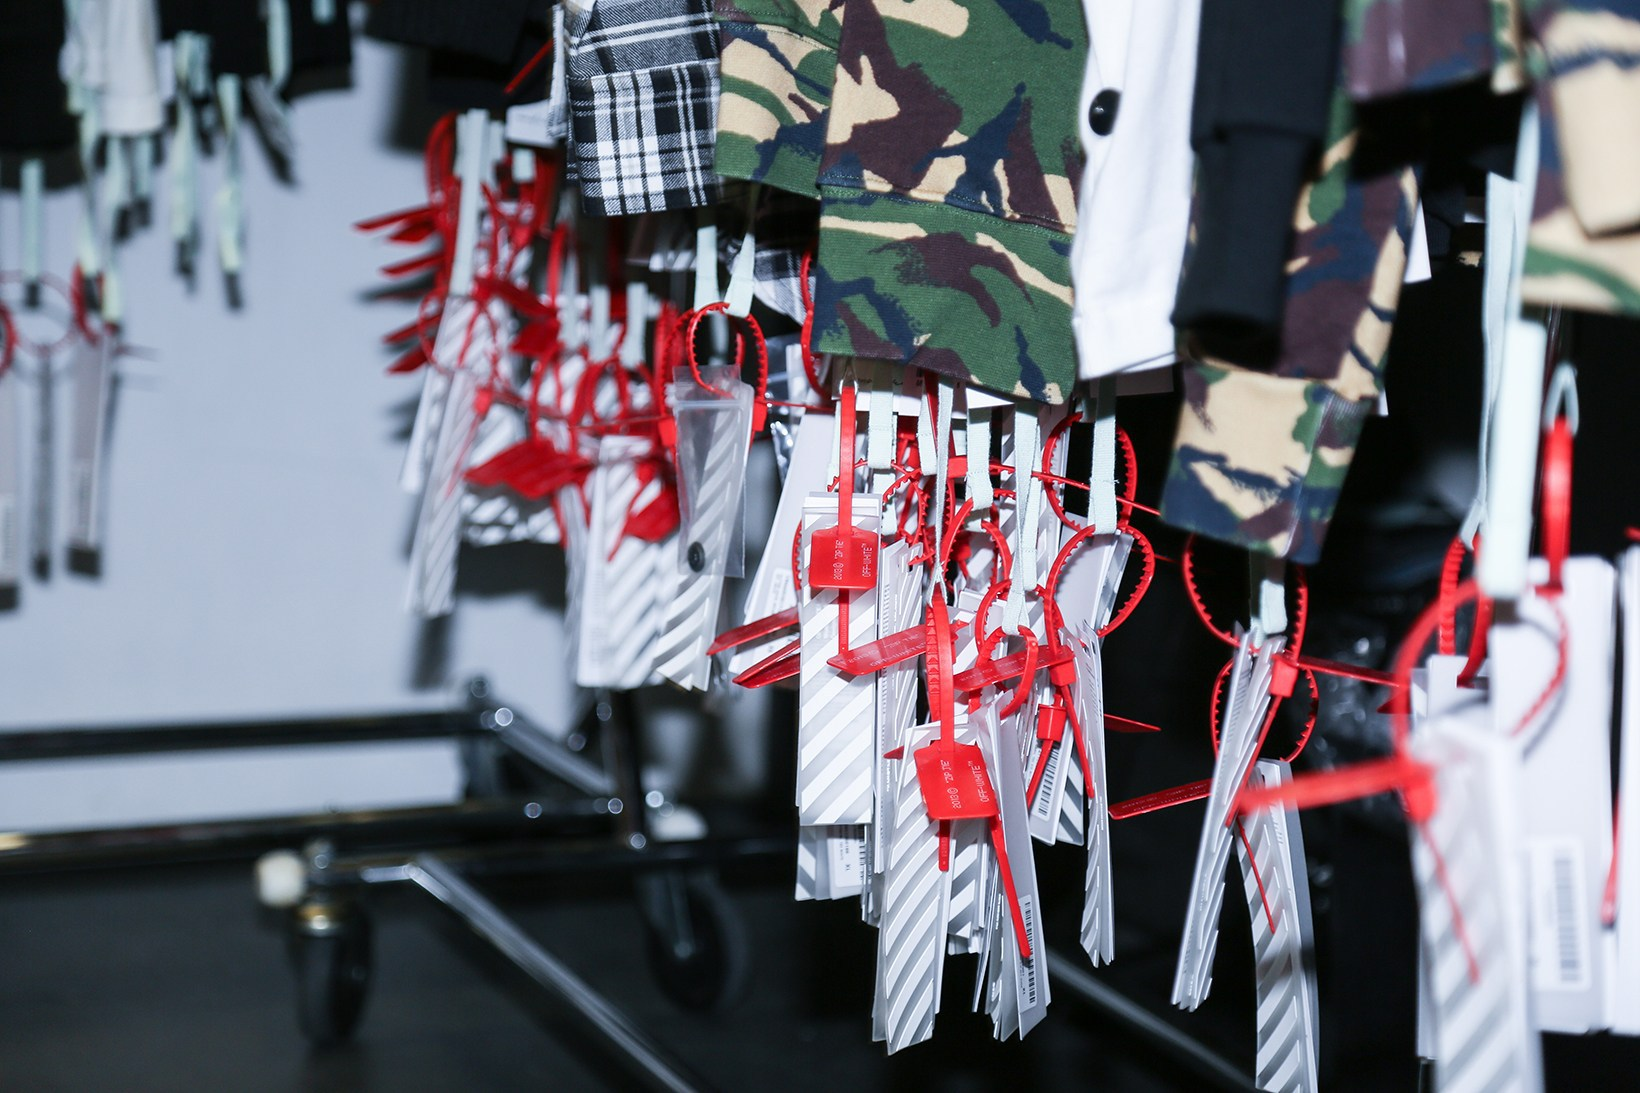 off-white-pop-up-maxfield-photographs-pause12